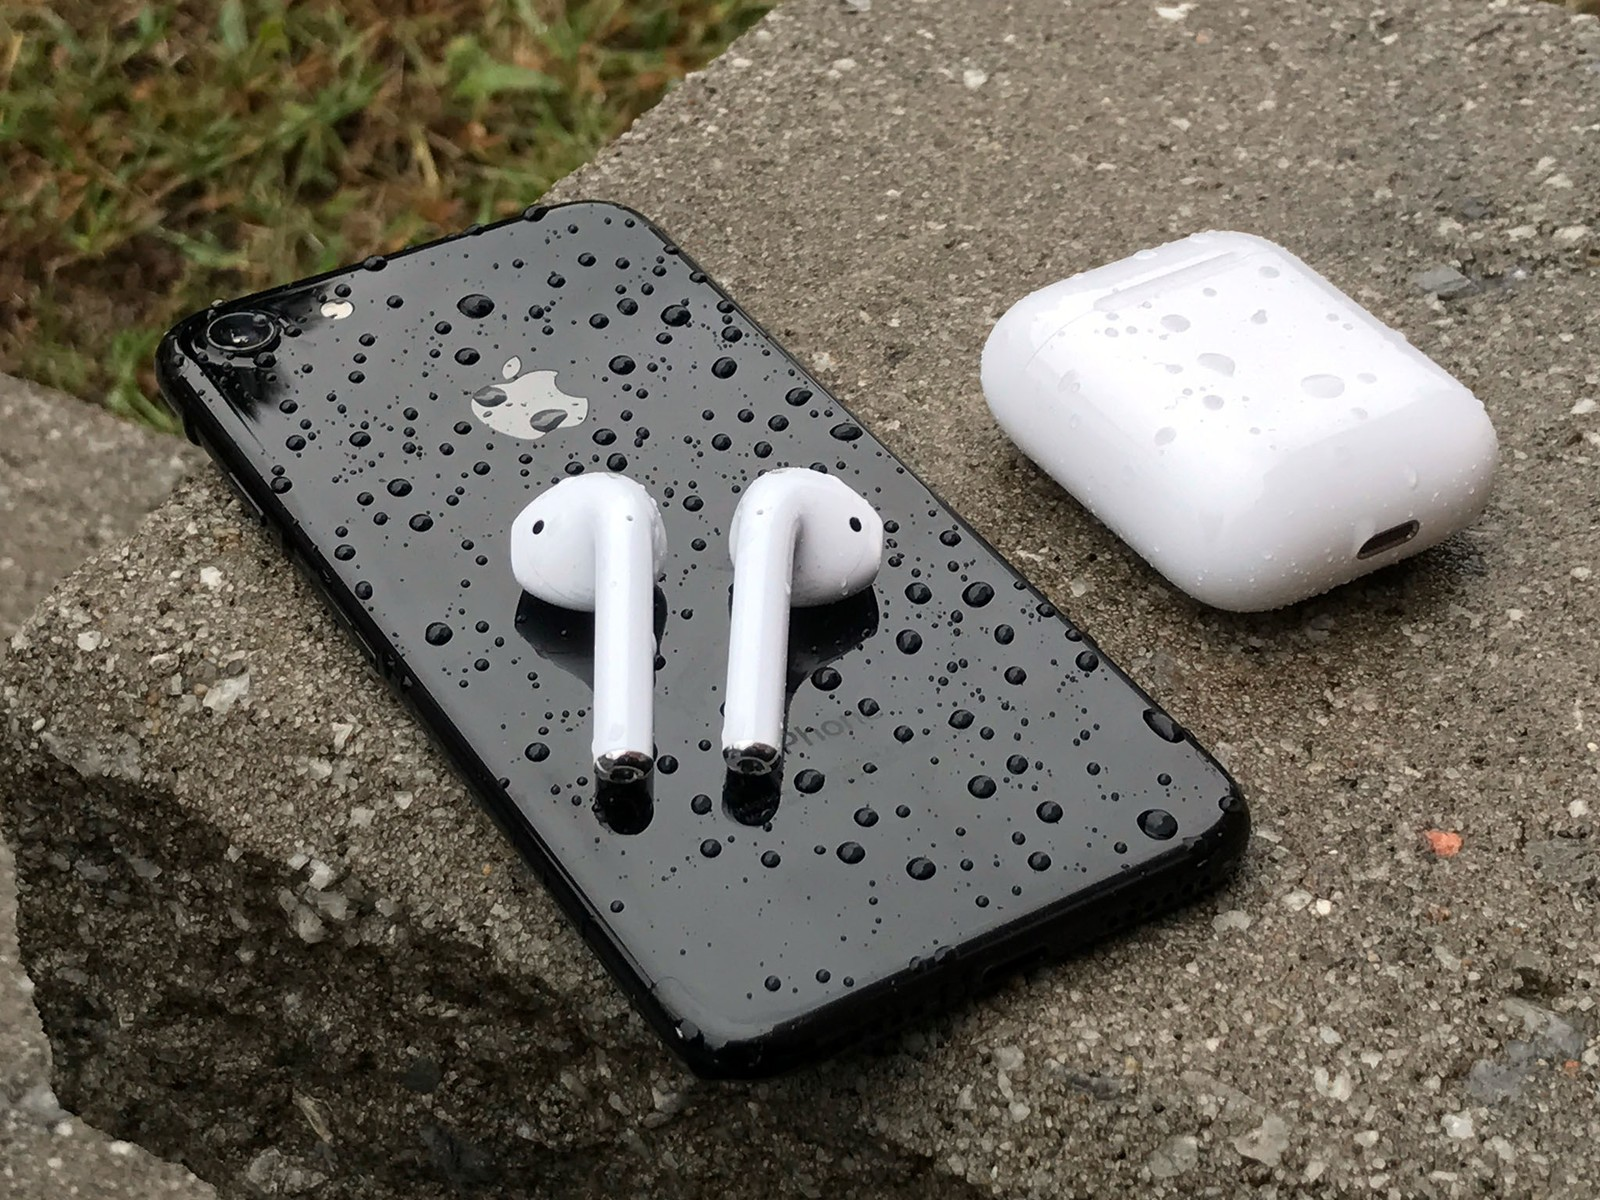 official photos d815c 39054 7 Solutions To iPhone 7 Lacking a Headphone Jack | iMore